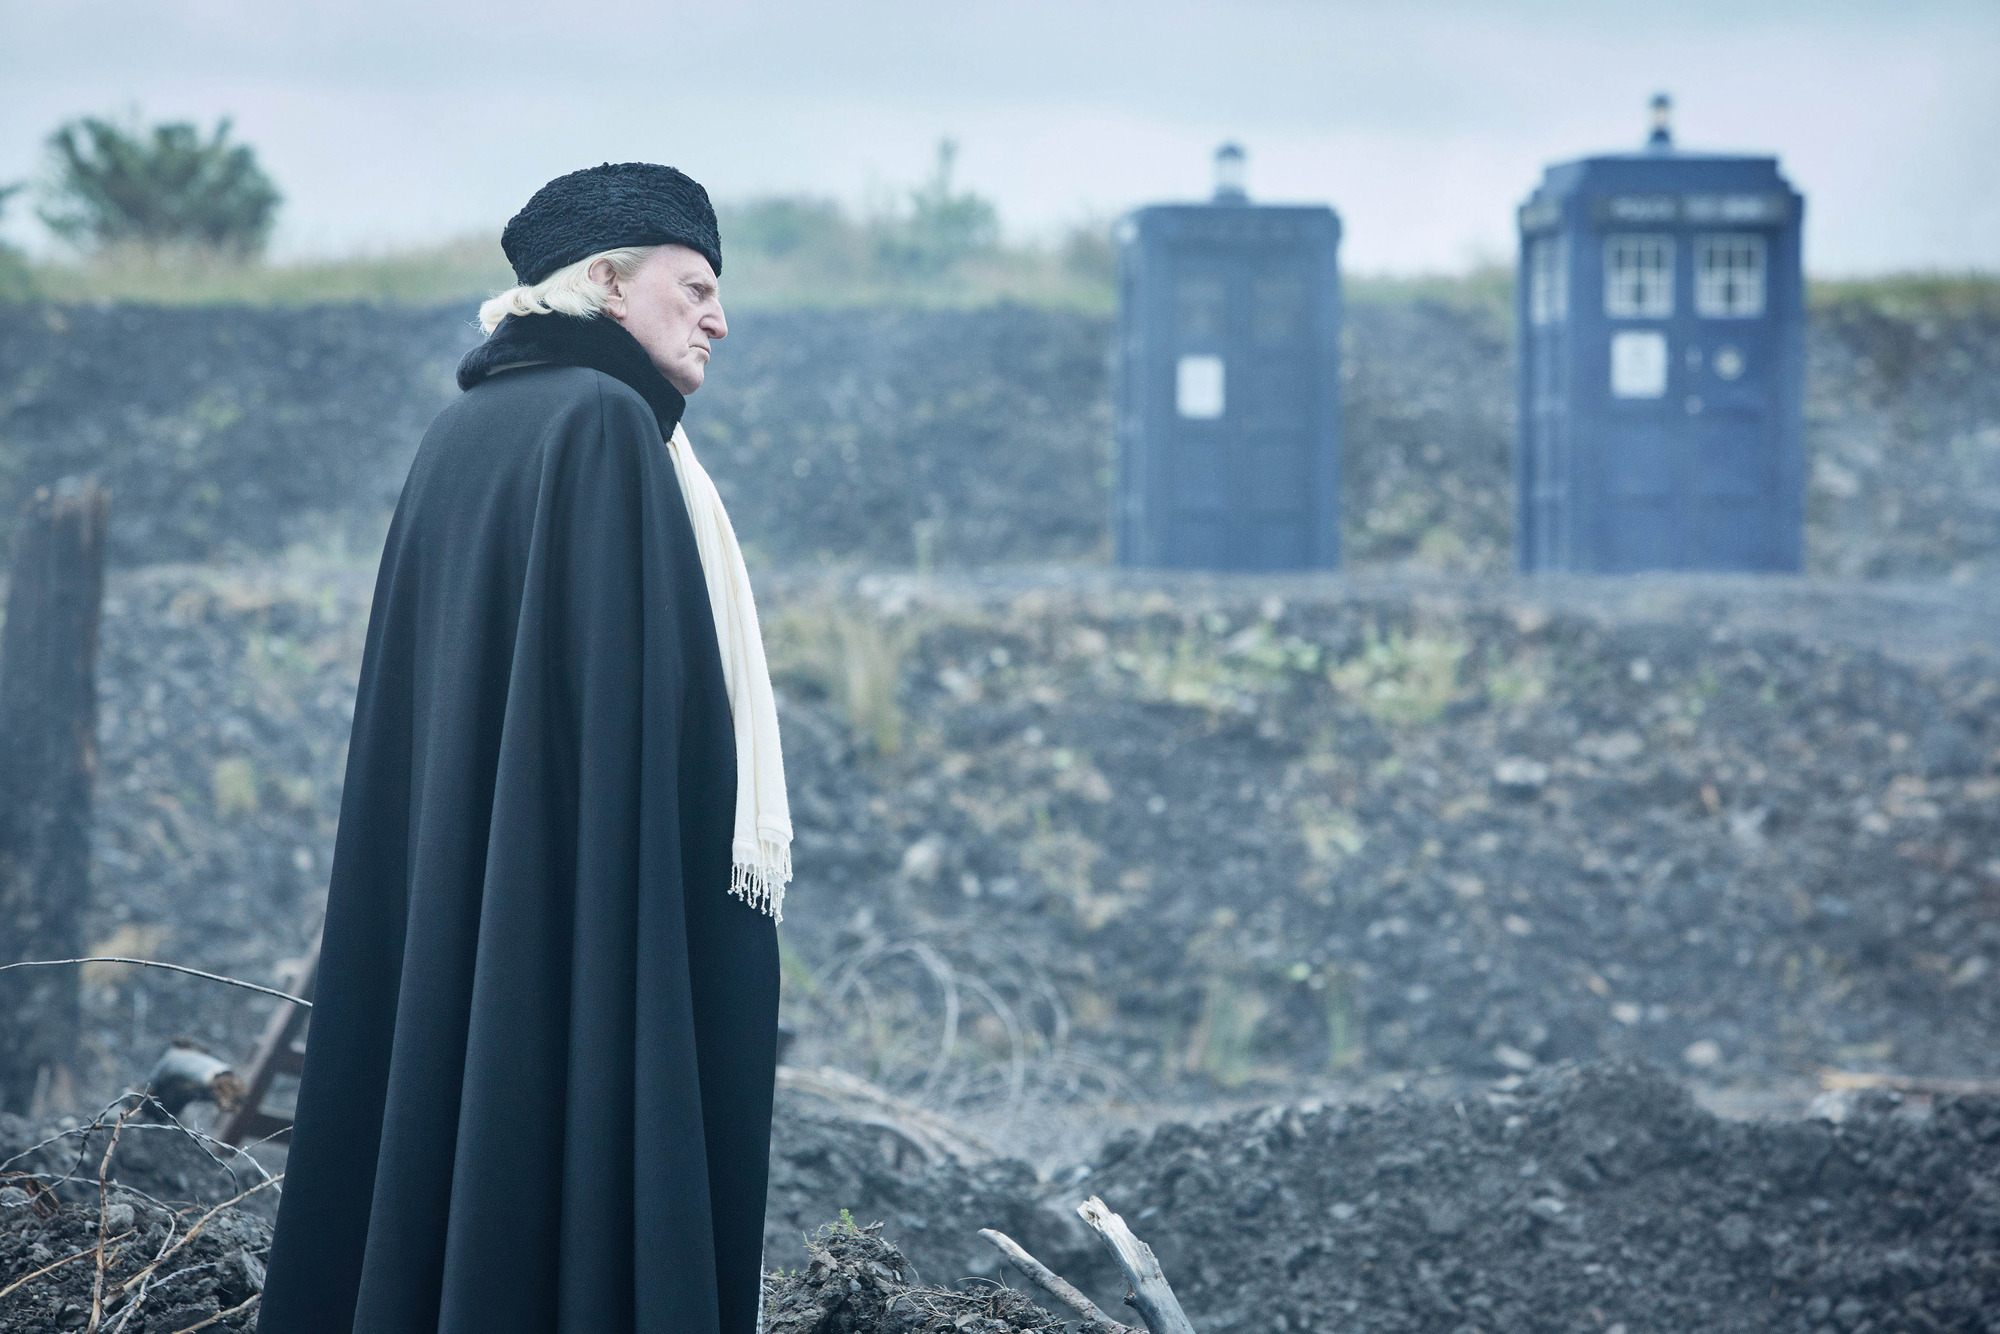 David Bradley as the First Doctor in Doctor Who with two Tardises in the background